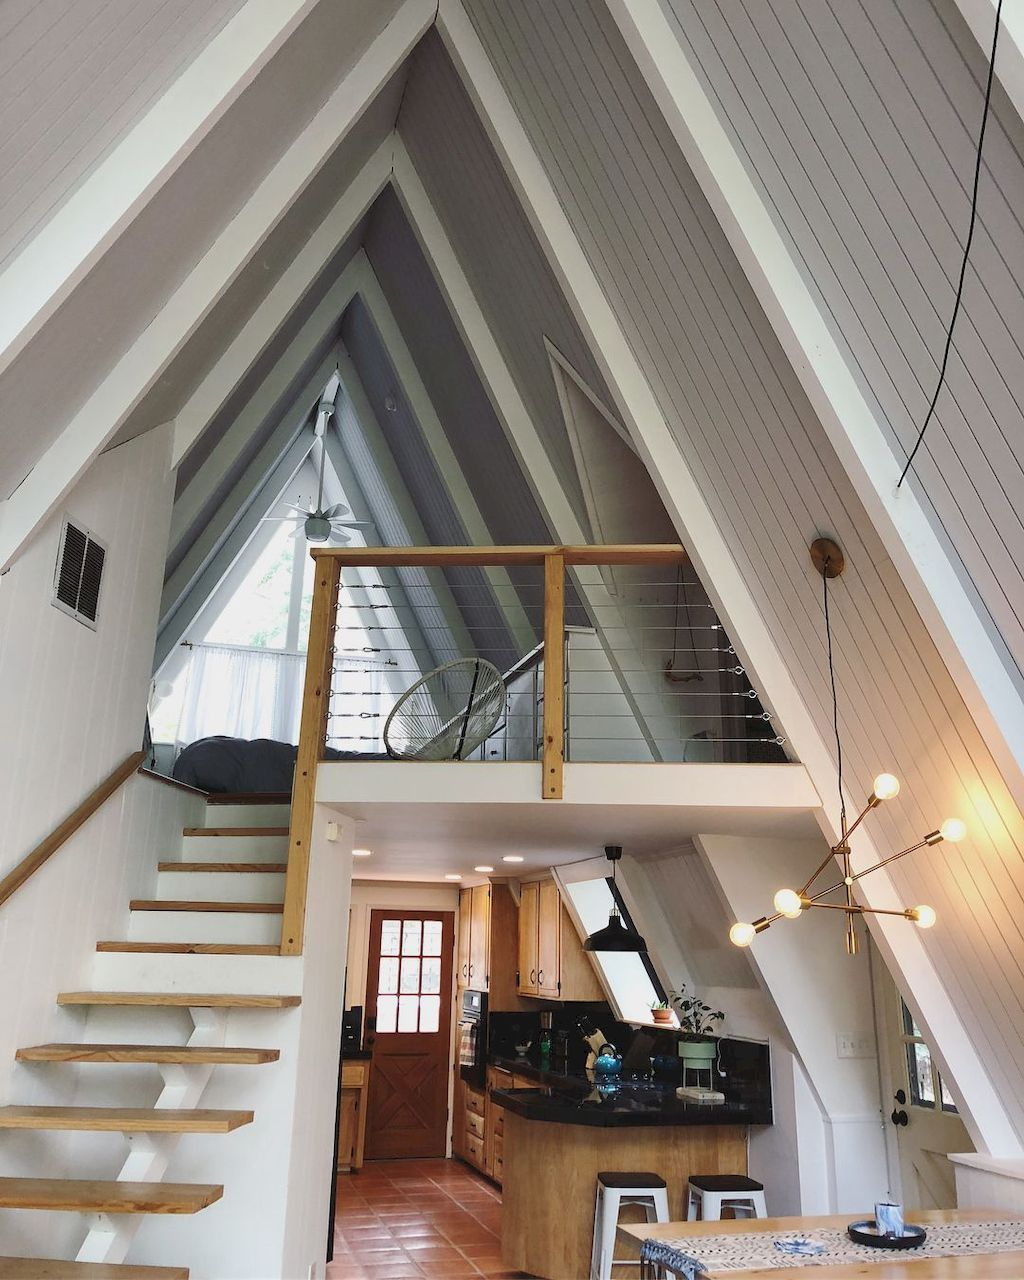 Home Design Ideas For Small Houses: 70 Clever Loft Stair For Tiny House Ideas